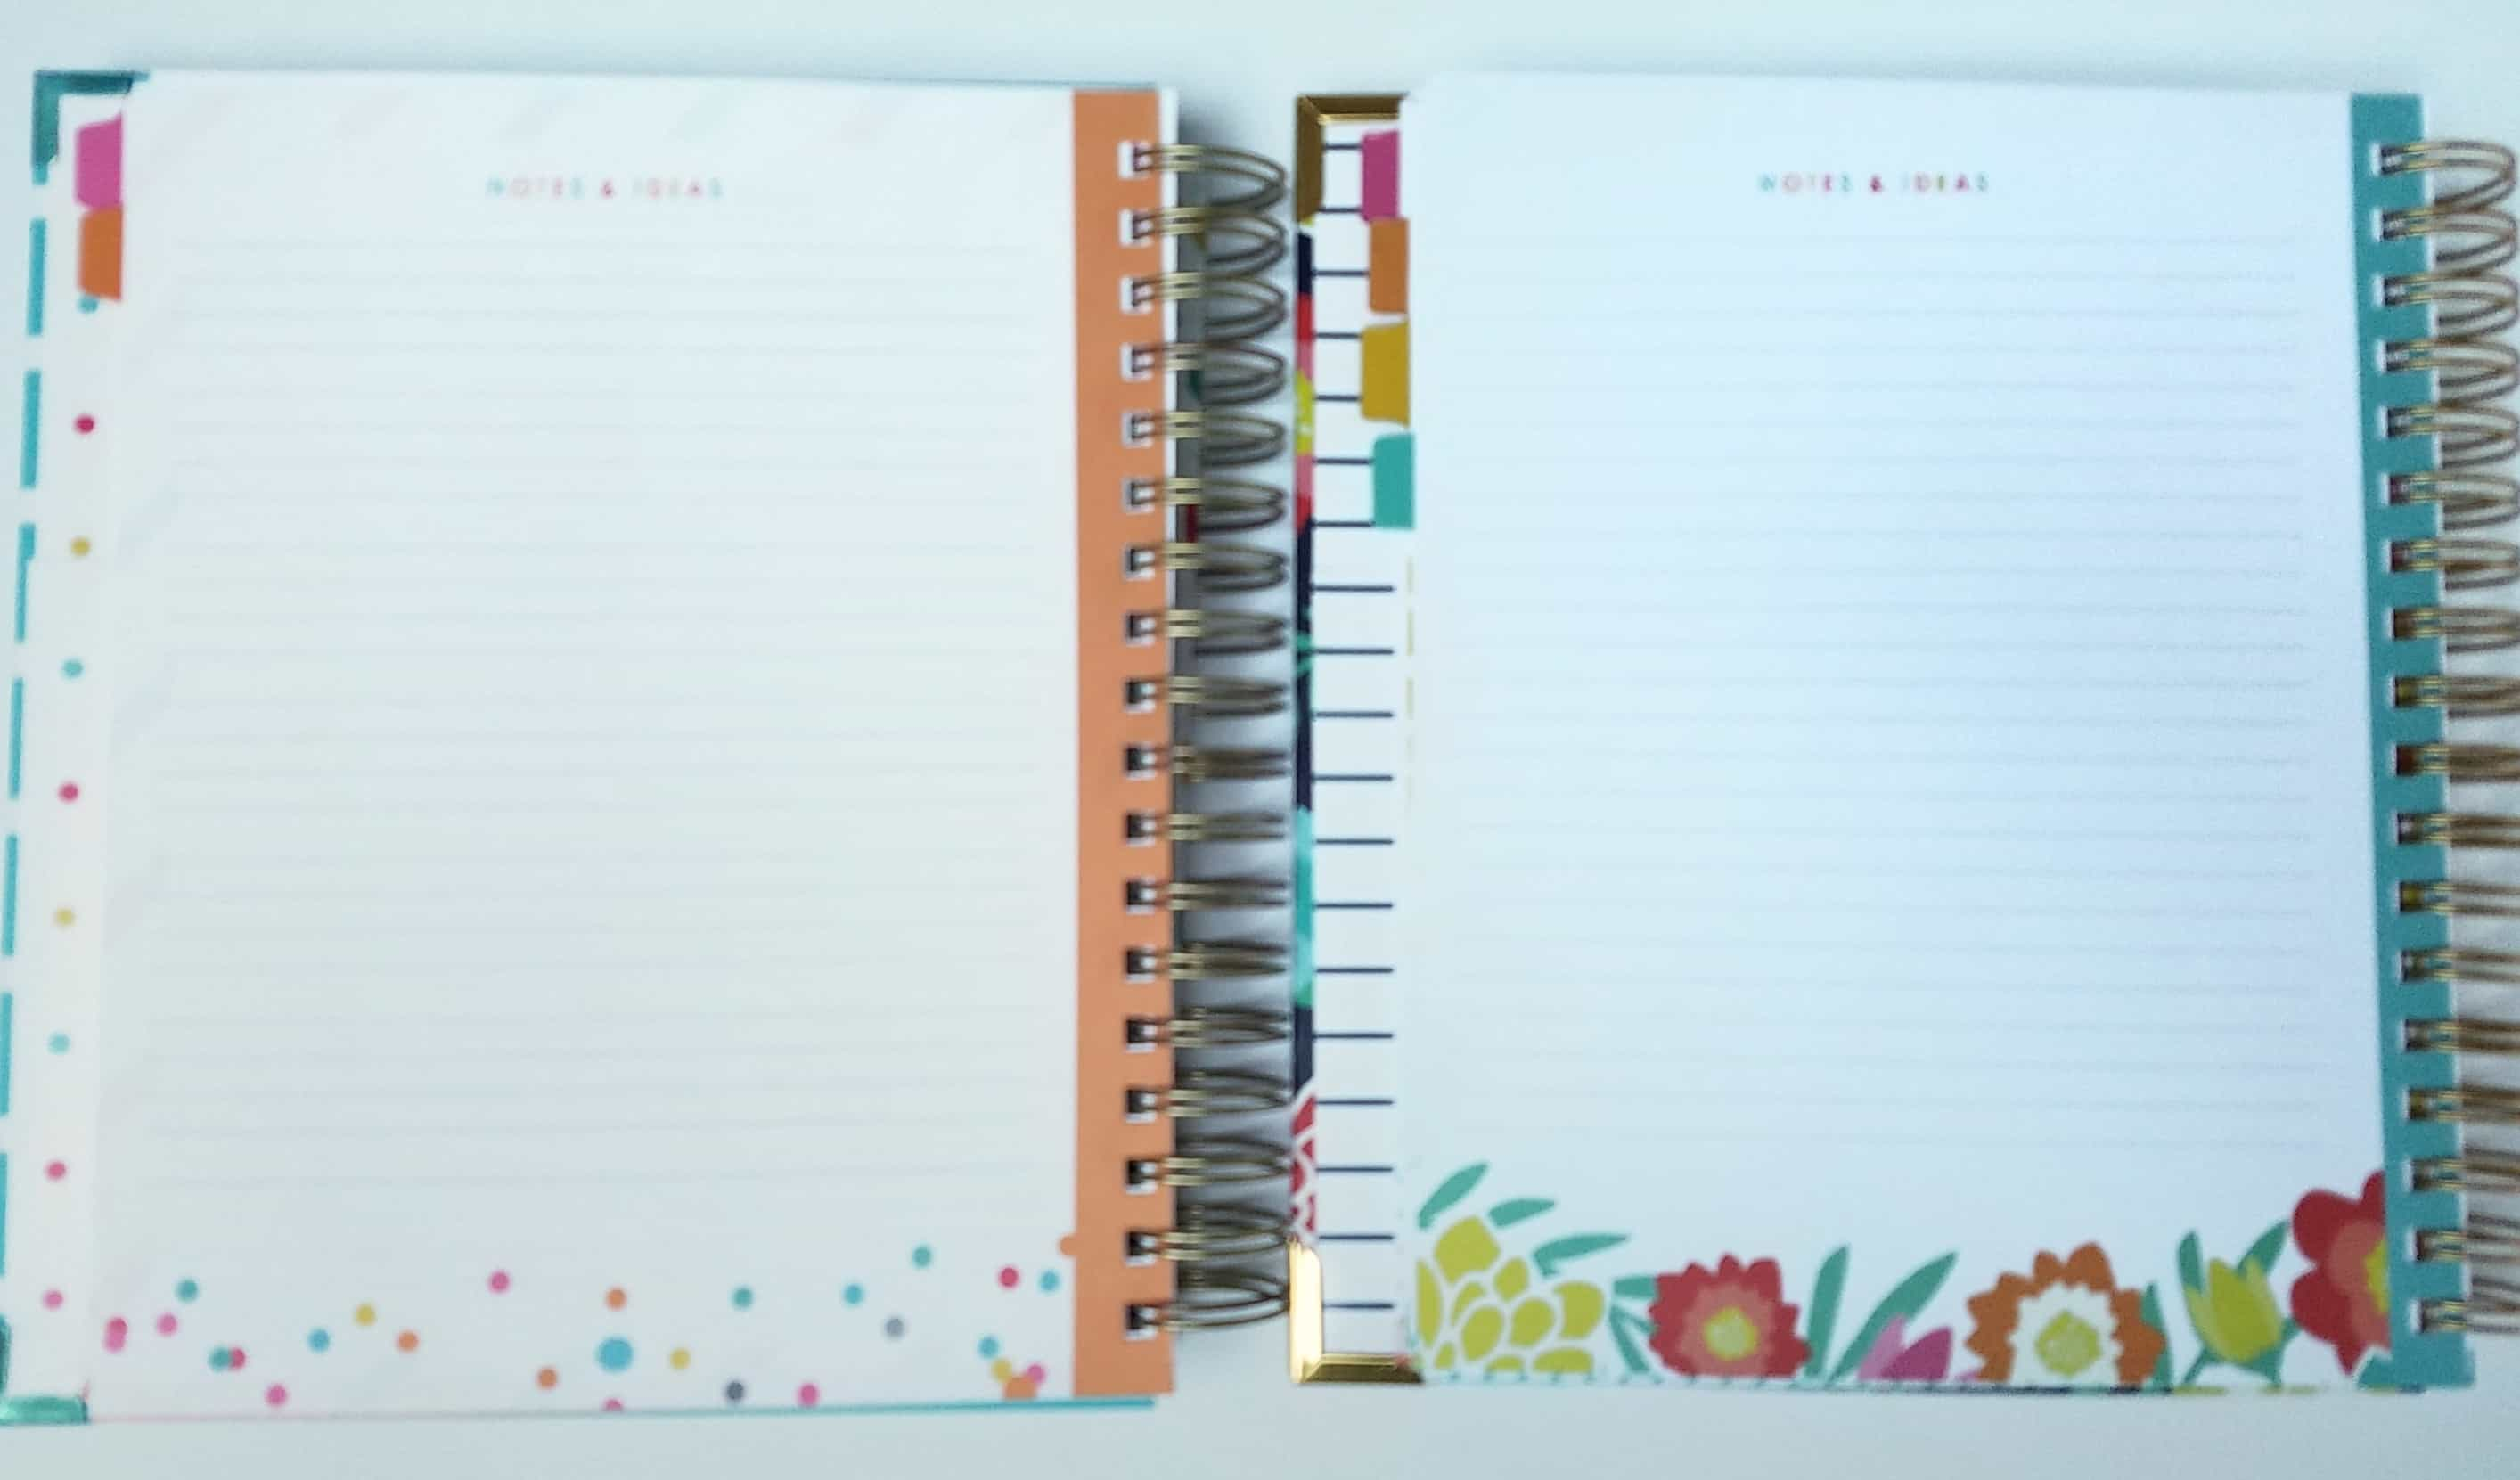 Ready to crush your goals and get your life in order? The Living Well Planner has helped me do just that time and time again!